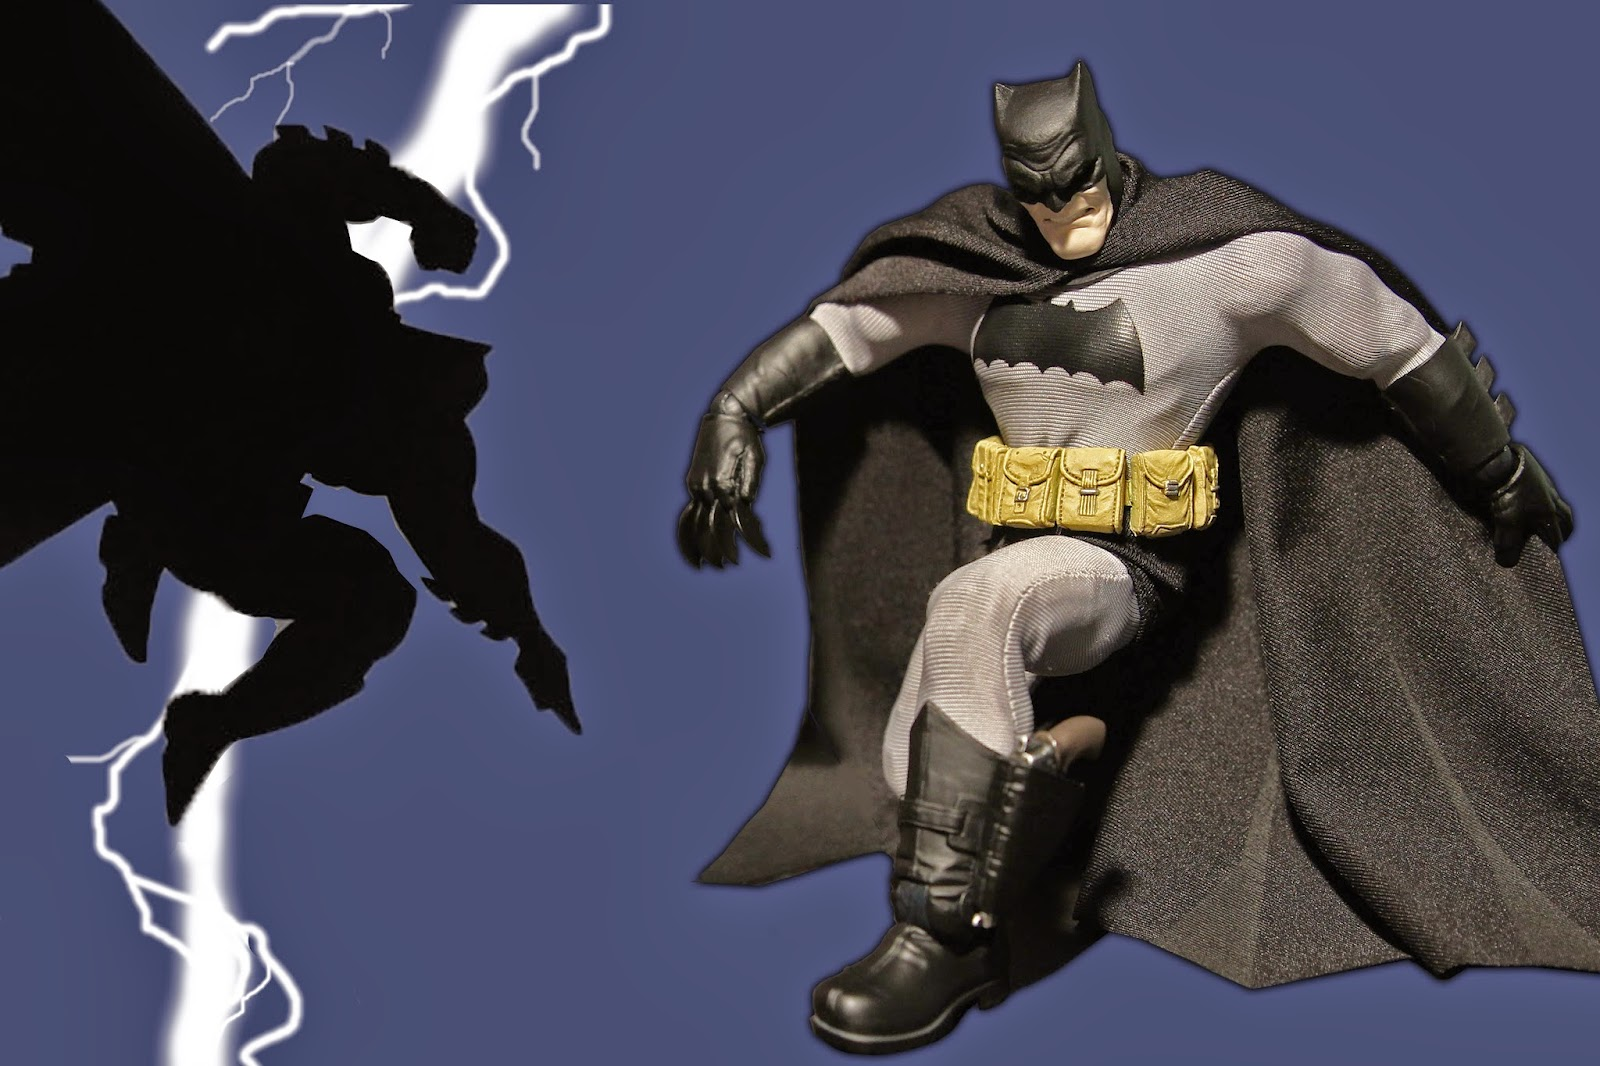 "Mezco Reveals The One:12 Collective  New York- (July 22nd, 2014)- Mezco Toyz today announced The One:12 Collective, a new line of high end 6″ scale collectable figures.  Redesigning the 6″ scale figure category by combining posable action figures with real cloth outfitting, in a similar fashion to the 1/6th scale and larger collectables. Mezco's One:12 Collective line will present a multitude of different characters from numerous brands.  Combining superior sculpting with an abundance of articulation, the One:12 Collective figures feature over 32 points of articulation, capable of over 40,000 possible poses: combining form and function to create a remarkably realistic aesthetic. Digitally sculpted by the industry's finest artists and painstakingly engineered by Mezco's production team is a state of the art collectable that holds up to real play. The costuming is meticulously tailored and uses specially selected materials to create the highest standard of outfitting and drapery at the 6″ scale. Fabrication, color, drapery, comparative scale and mobility are all closely considered to bring the finest attire achievable.  Every One:12 Collective figure will include a display base as well as a multitude of accessories. These accessories are designed to have a ""real world"" look to further make the figure seem like it has truly come to life. These accessories, also precisely crafted, range from changeable parts to character specific weapons, equipment and props.  Currently planned for the One:12 Collective are characters from The DC Universe, Judge Dredd, Classic Universal Monsters, and some other surprises to be announced in the future.  Mezco President, Mez Markowitz declared ""We are all very excited with the One:12 Collective line. I think we are offering a fantastic product that both satisfies the customers desire for articulation as well as the ability to hide it all in a extremely realistic way. Another great aspect to the line is that we are striving to present high quality product that is in line with 1/6th scale (12″ figure) collectables while taking up far less display space and at a much more reasonable price point. Our Dark Knight Returns Batman figure is really a fantastic piece and we cannot wait to show what is up next. Mezco plans on releasing several items a year from this line and it is a long term initiative for our team, really a dream come true for all of us here.""  The One:12 Collective ""The Dark Knight Returns"" Batman figure is set to be publicly revealed at San Diego Comic Con at Mezco booth # 3445 and shipping to customers in Fall 2014."